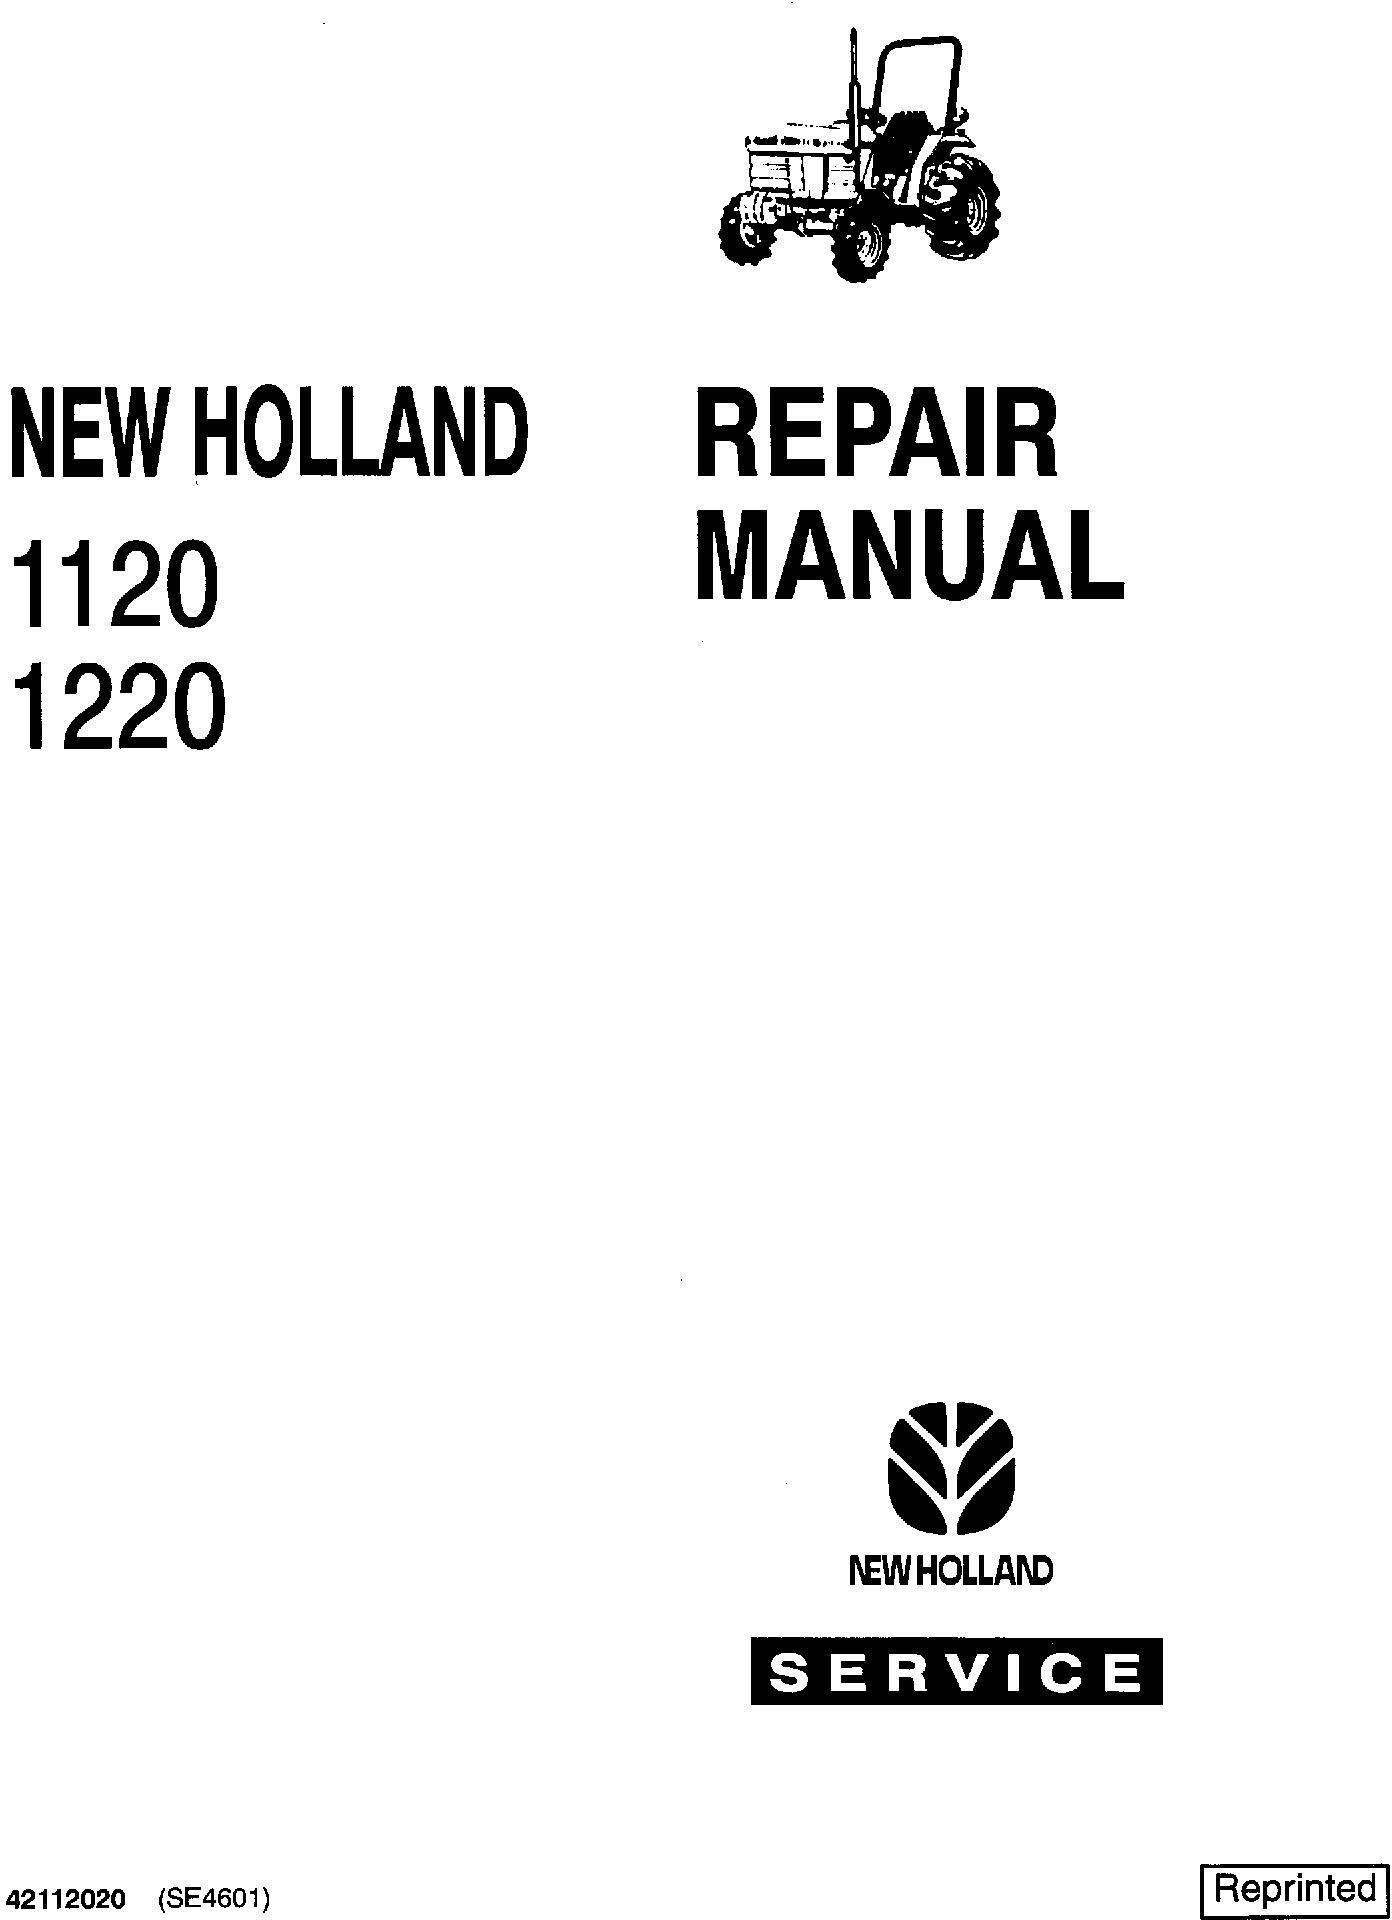 Ford 1120, 1220, 1215 Tractors Service Manual (SE4601